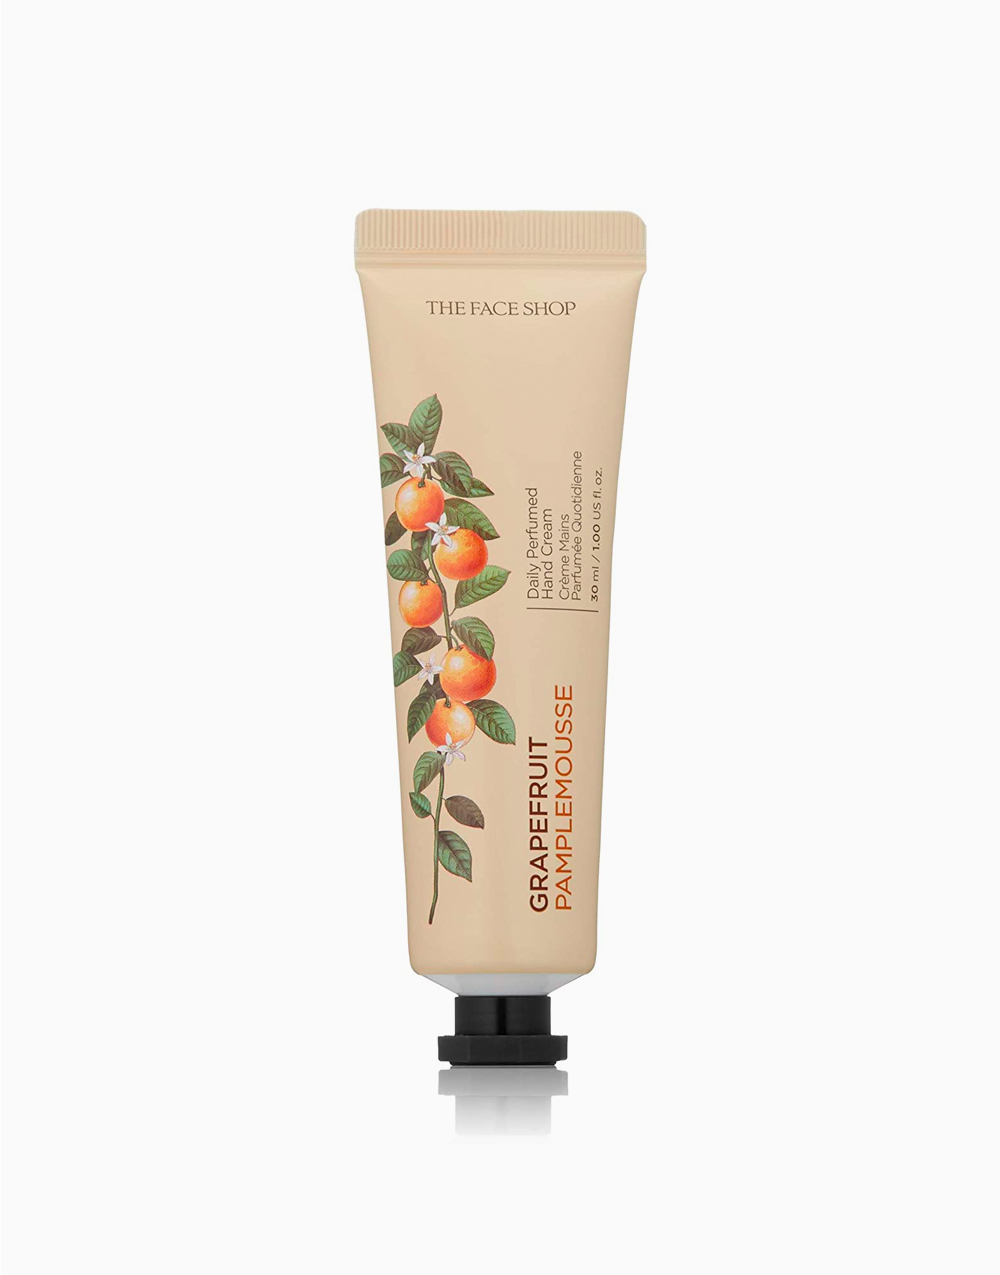 Daily Perfumed Hand Cream 02 Grapefruit by The Face Shop